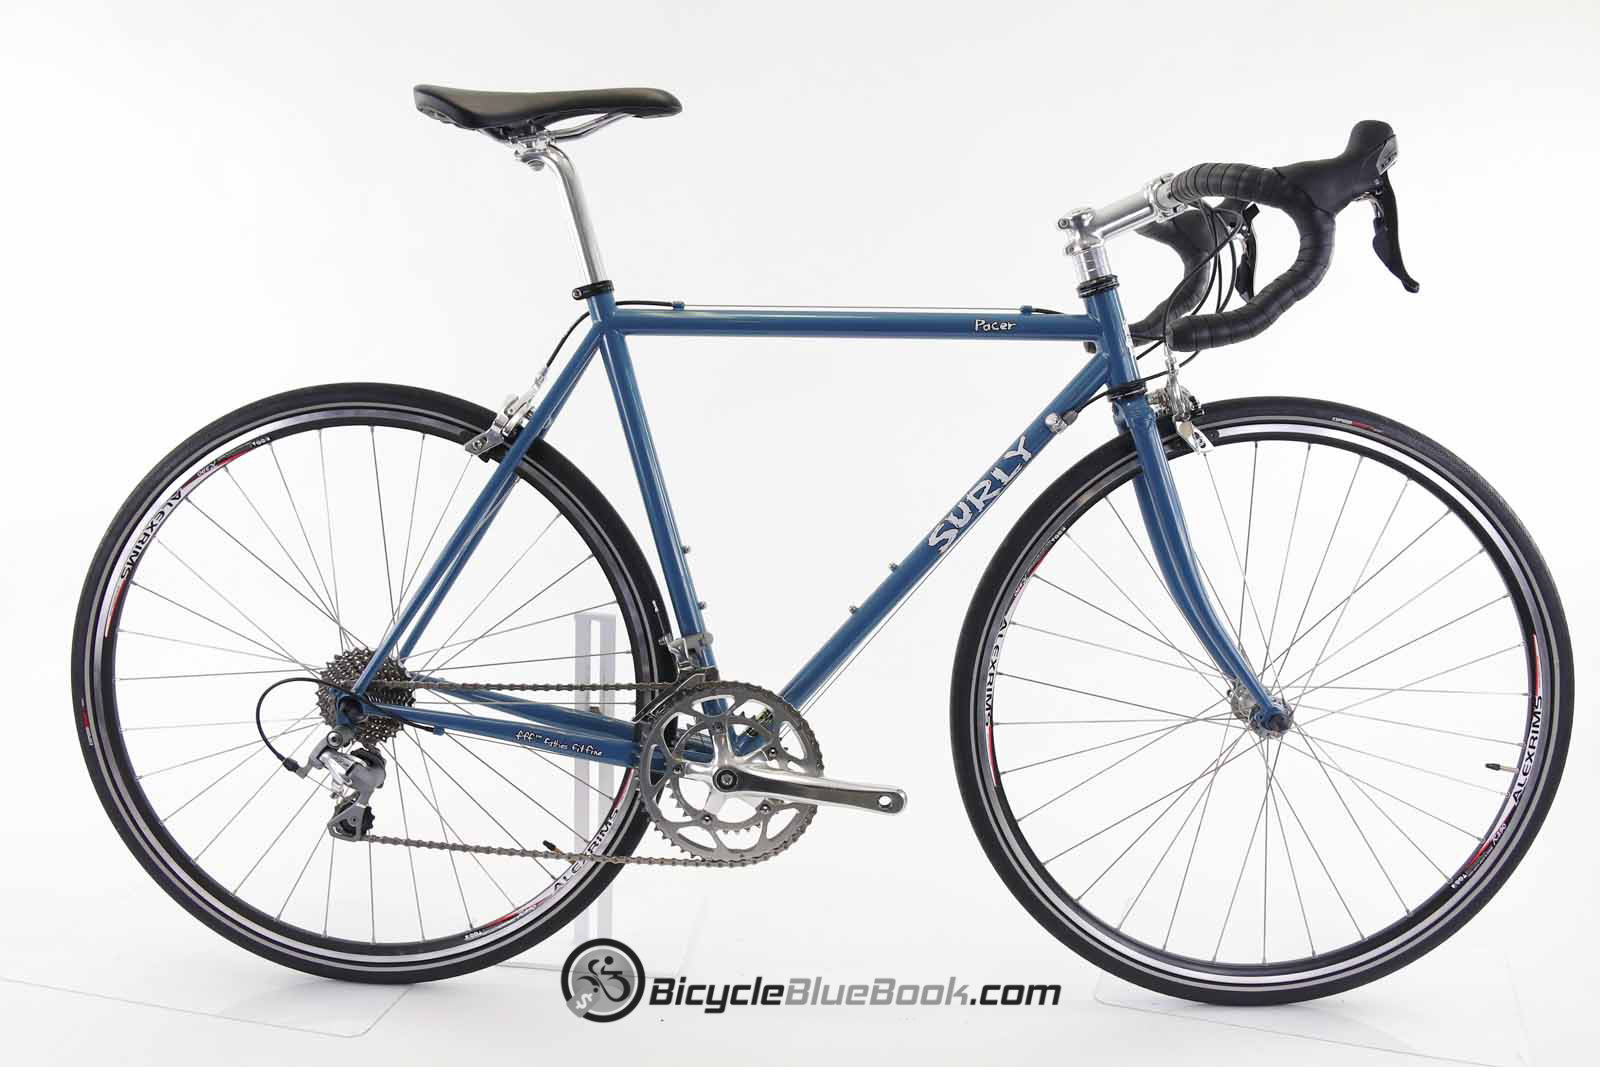 Surly Pacer For Sale - 2844 - BicycleBlueBook.com